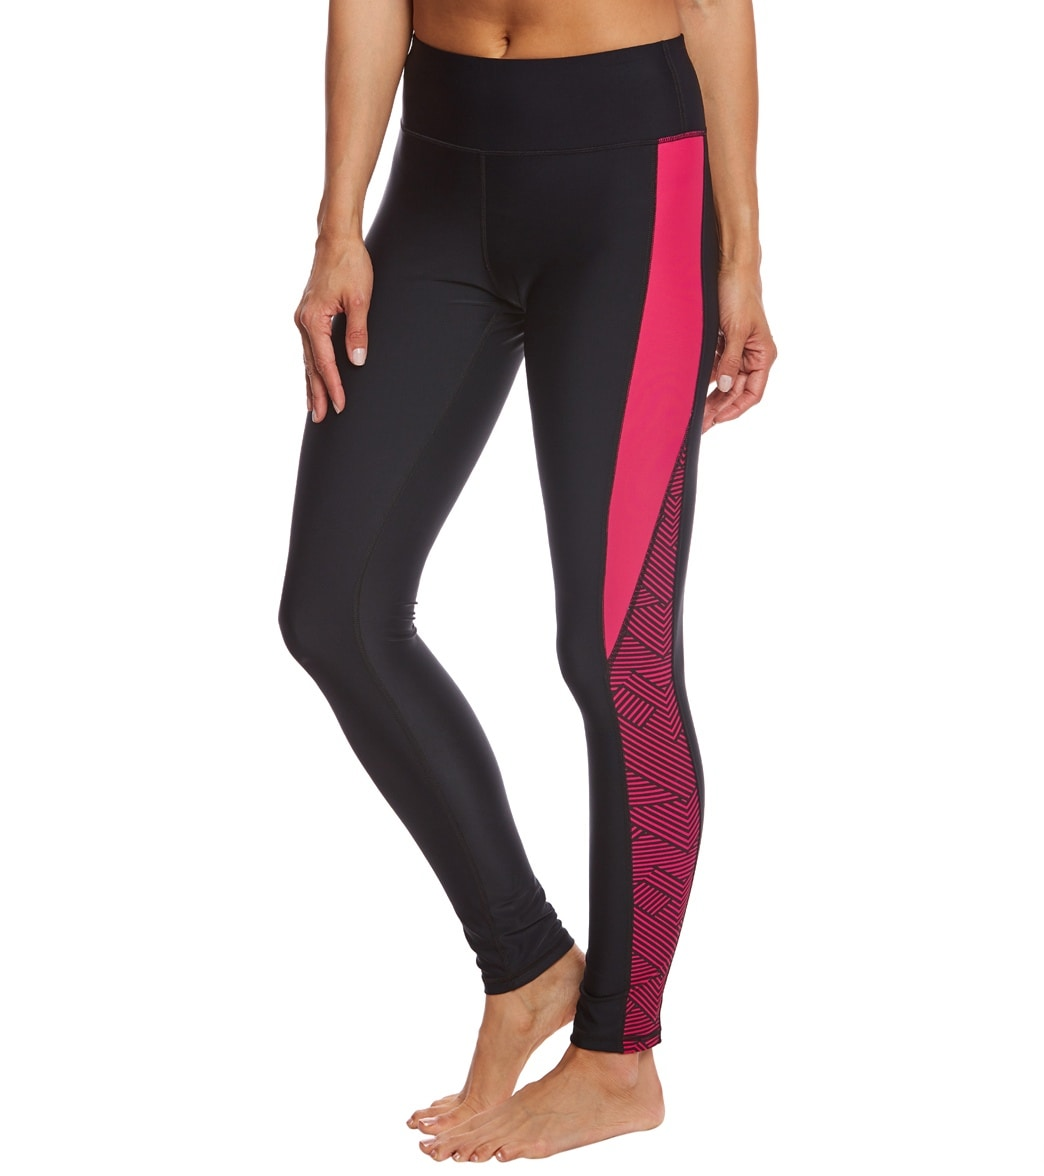 adca8fb4295db Women's Sun Protection Swim Tights at SwimOutlet.com